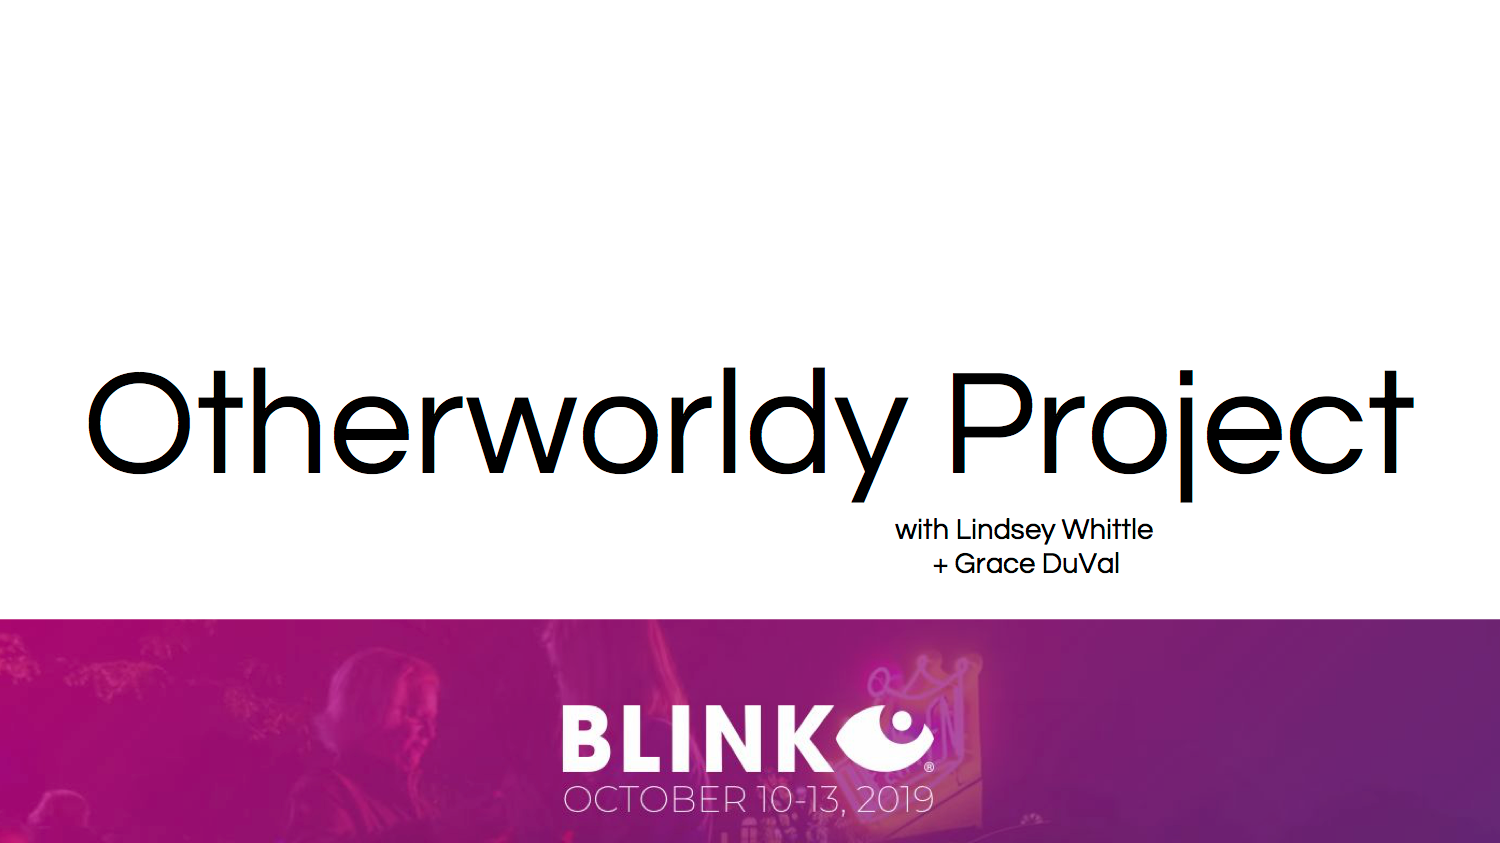 BLINK - Otherworldy Project1.png